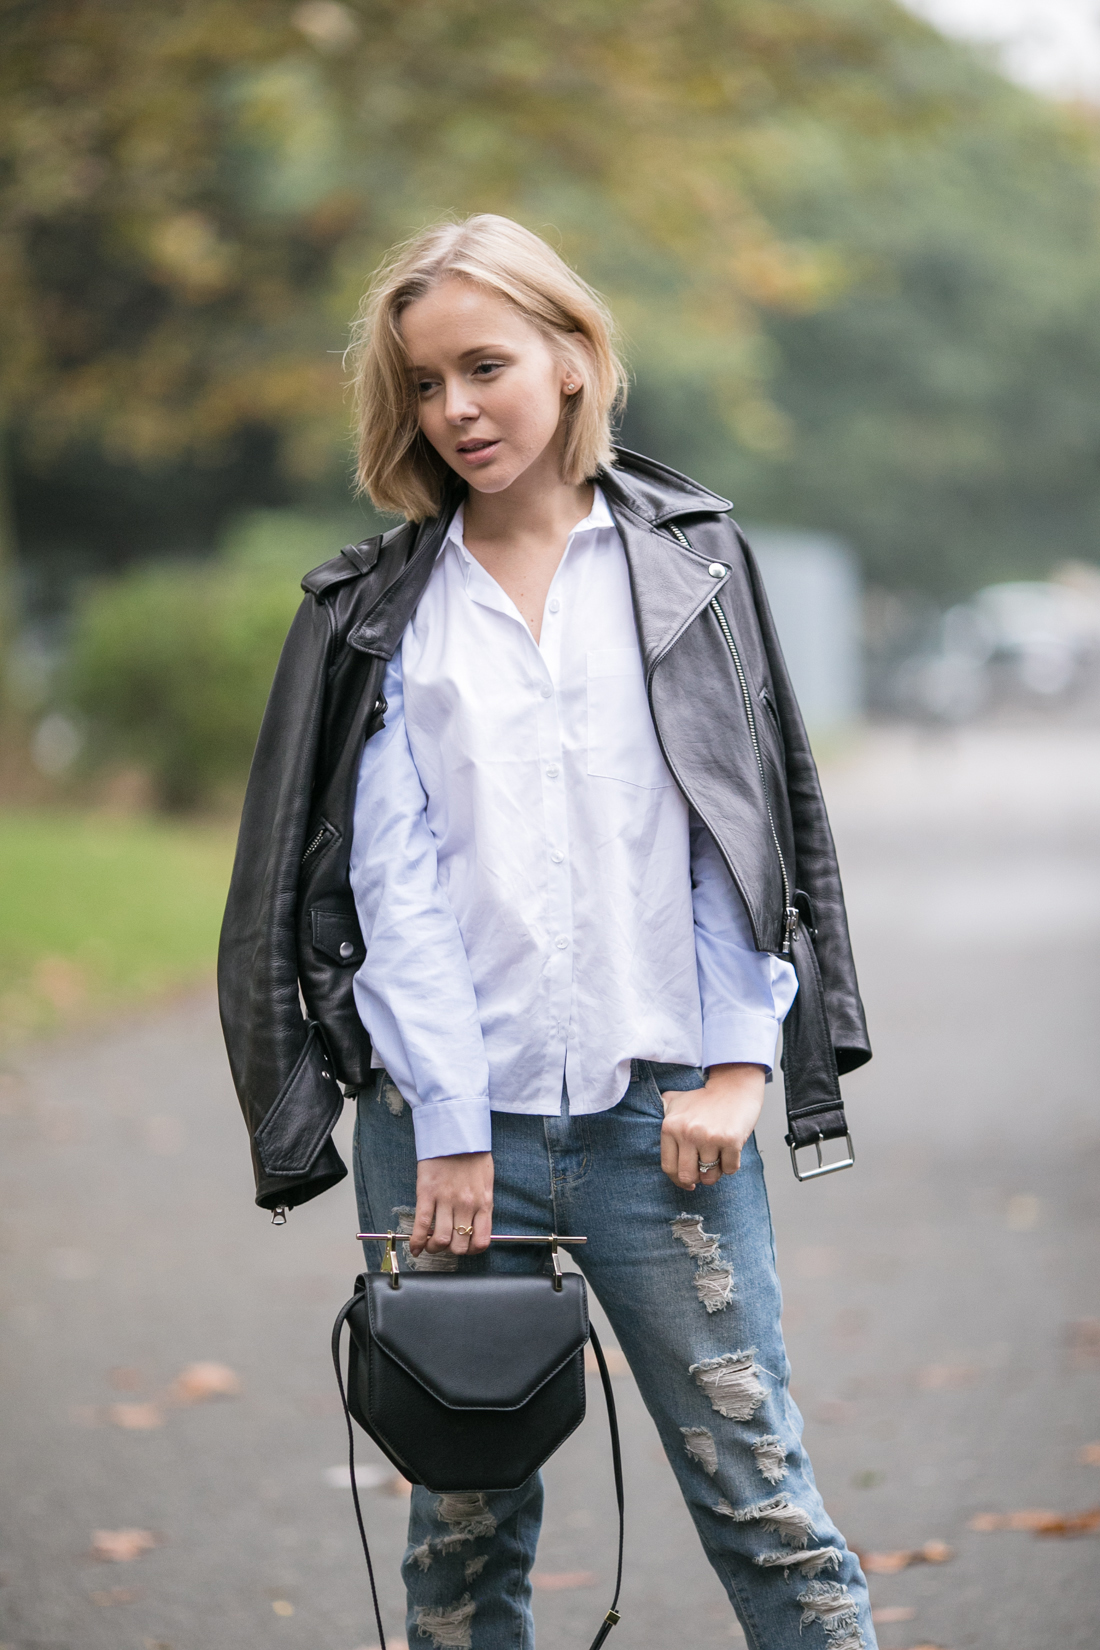 darya kamalova thecablook russian fashion lifestyle blogger in italy outfit spring acne mape leather jacket with boyfriend ripped jeans mules ans m2malletier black bag-5